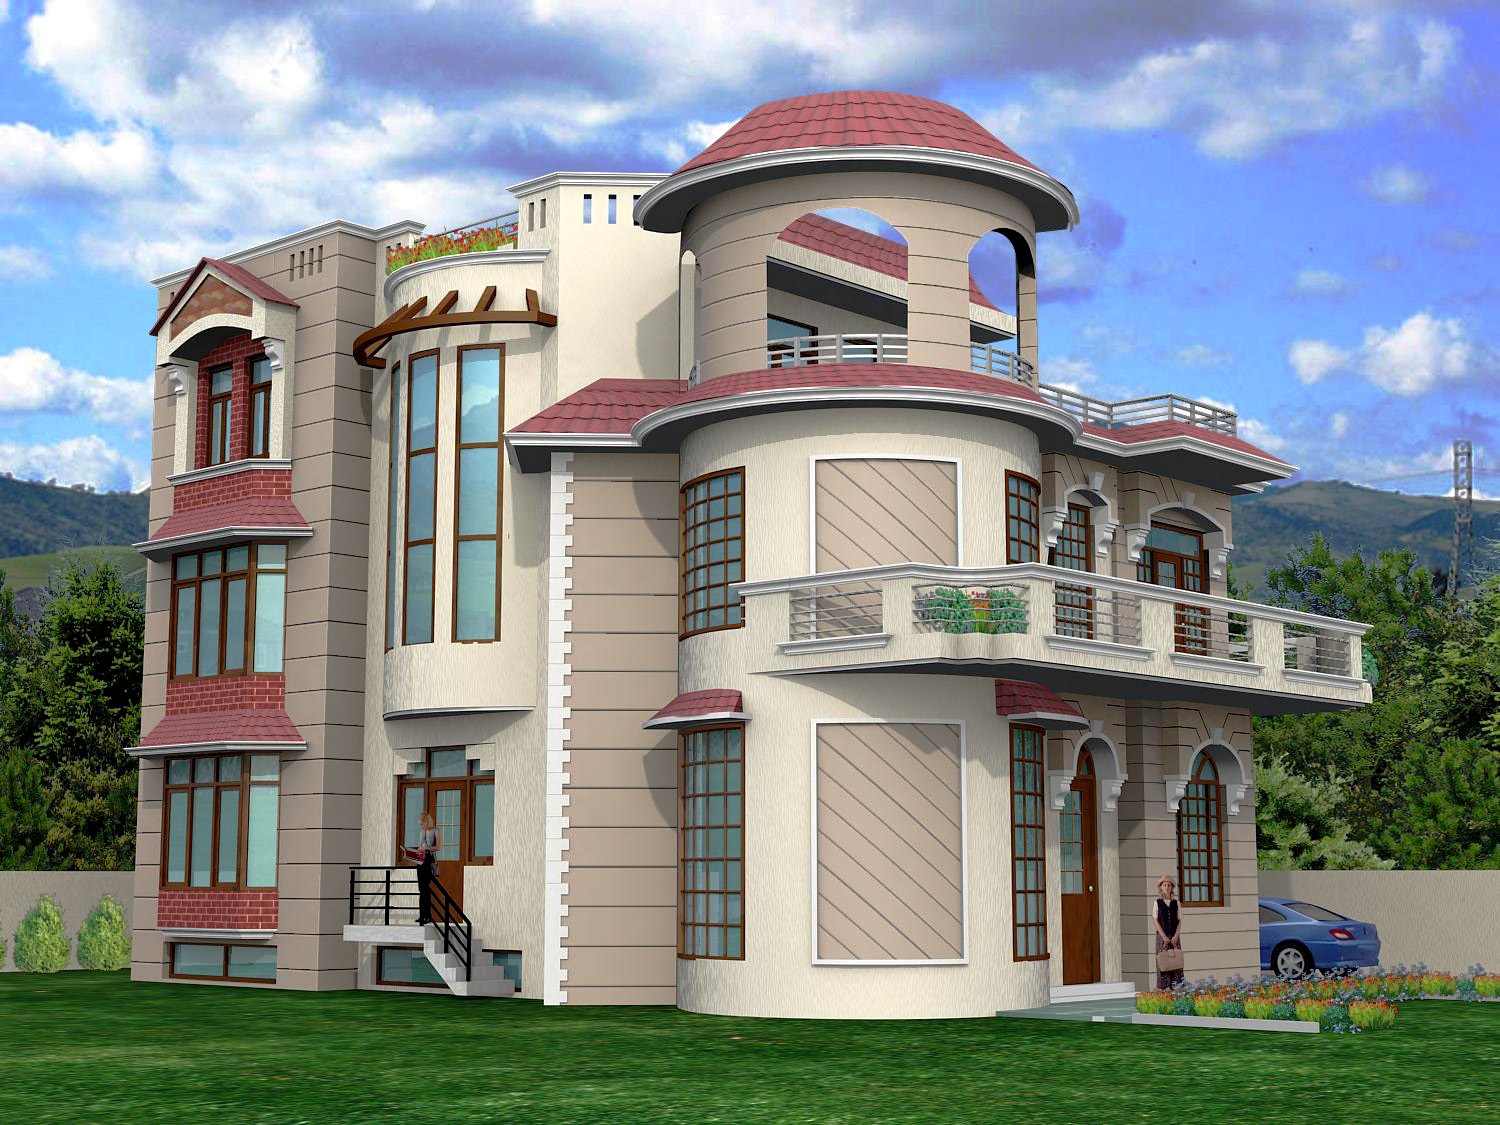 Deion: A modern building ., photos residential building elevation